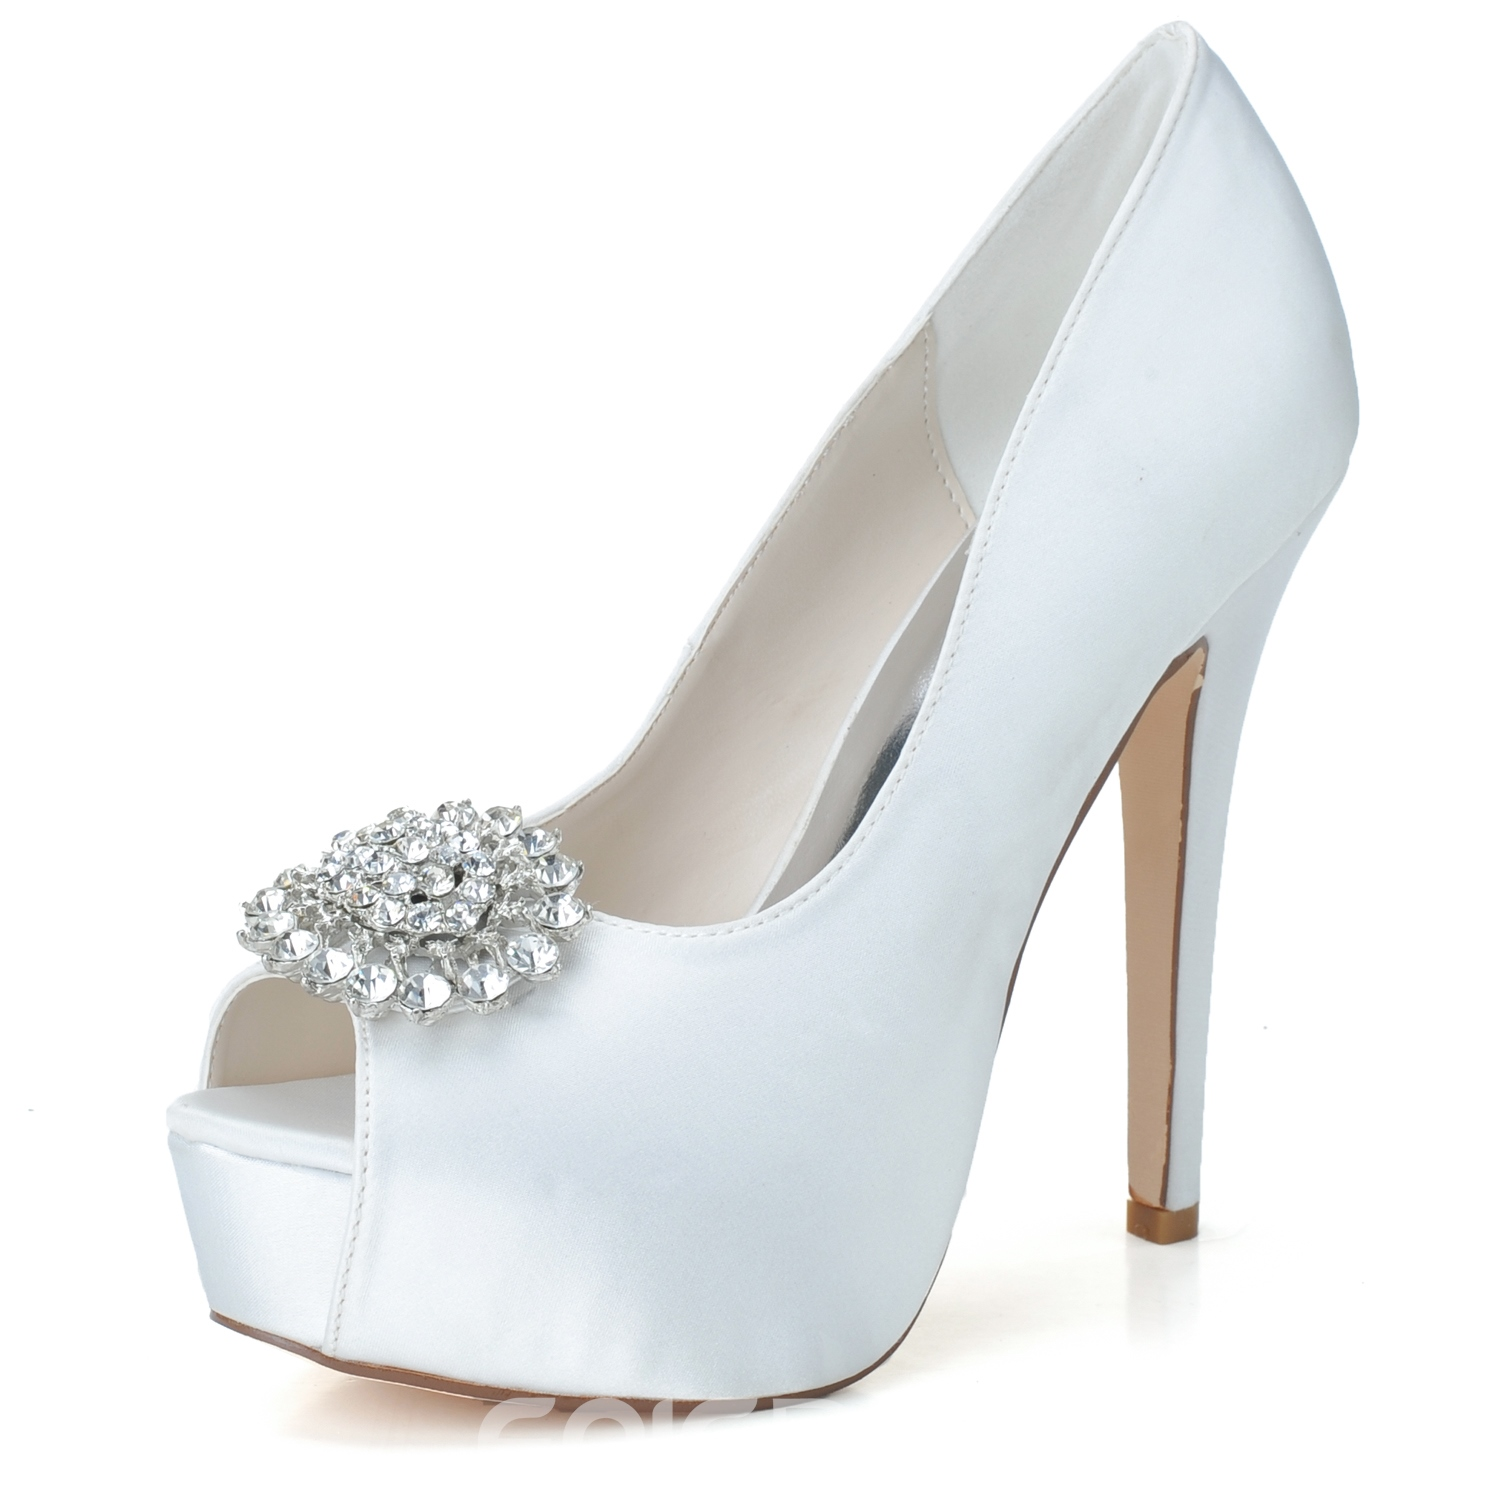 Ericdress Comfortable High Heel Wedding Shoes